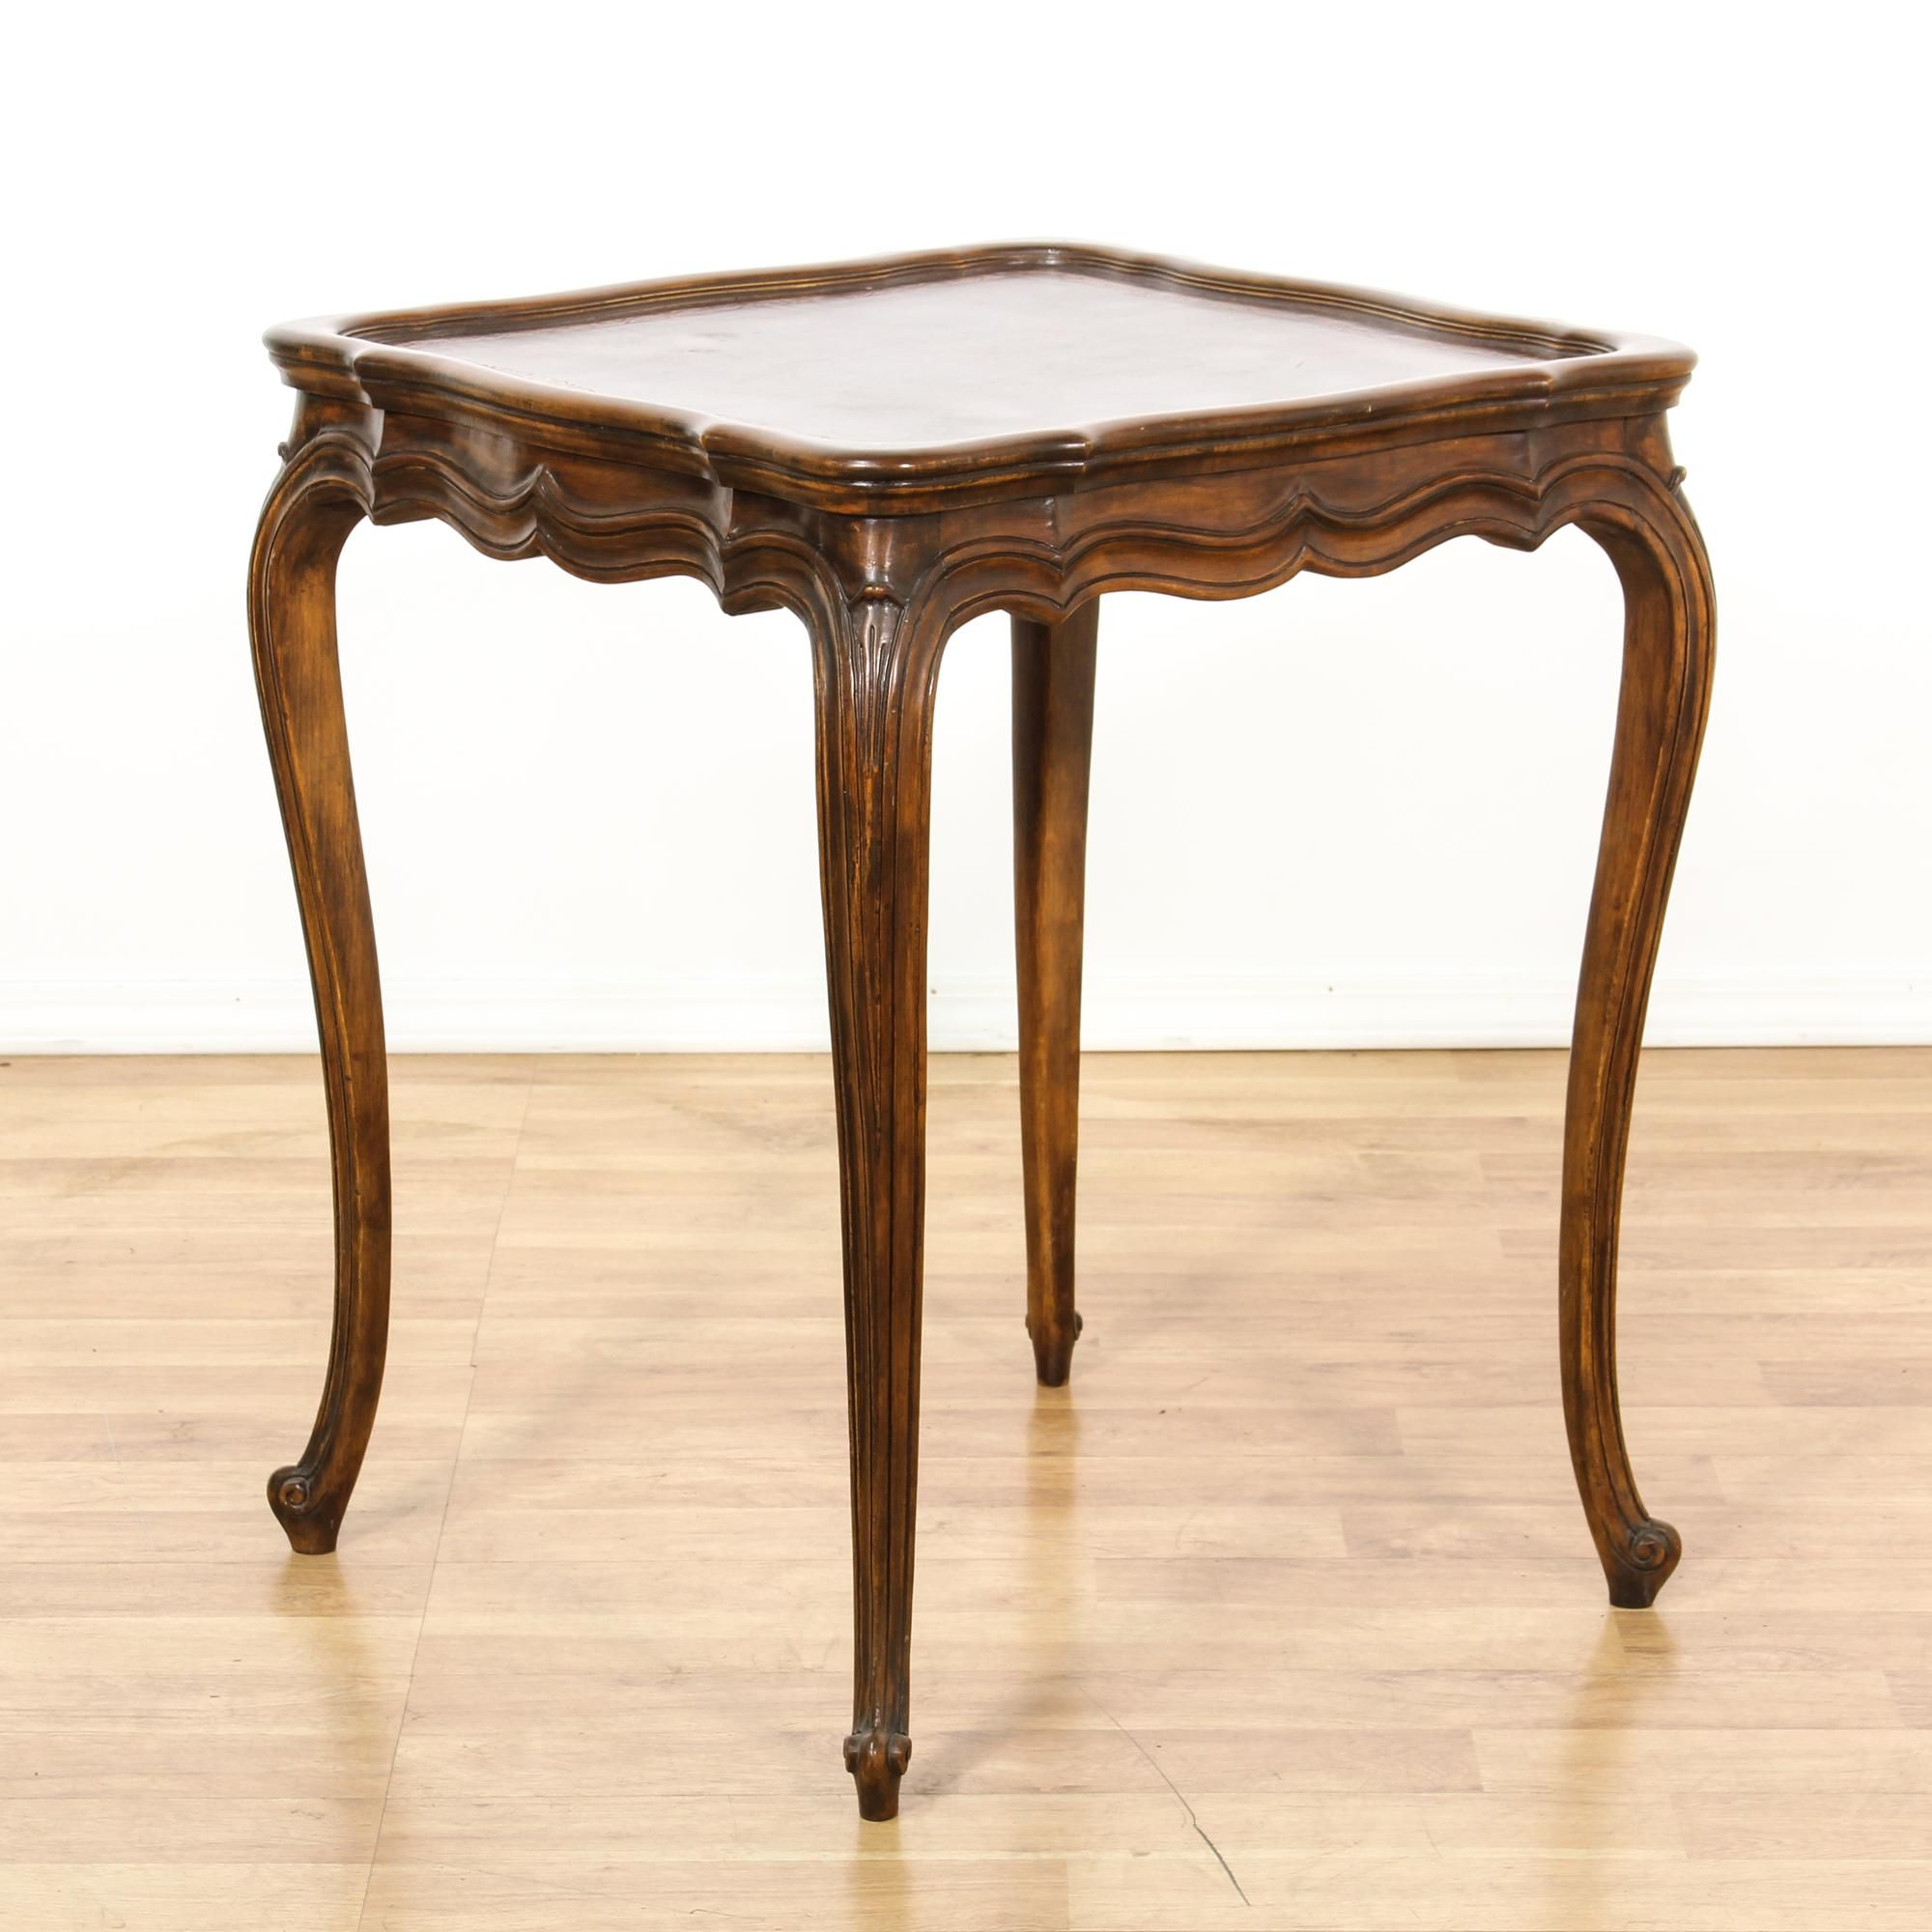 This French Provincial Side Table Is Featured In A Solid Wood With A Glossy Walnut Finish This Tall End Table Has A Durable L Side Table Table Tall End Tables [ 2000 x 2000 Pixel ]